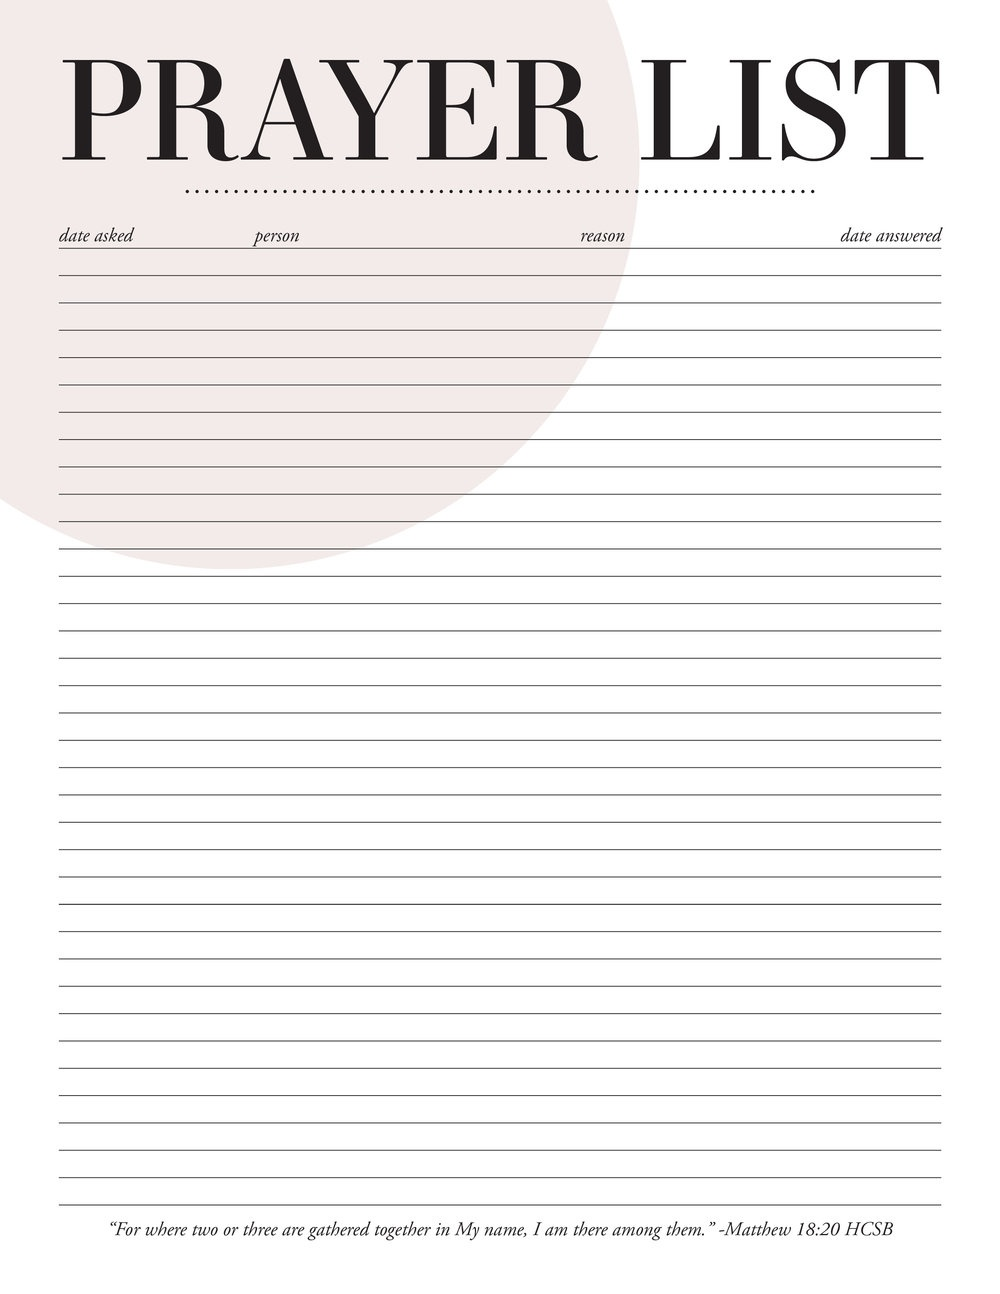 Printable Prayer List (76+ Images In Collection) Page 1 - Free Printable Prayer List